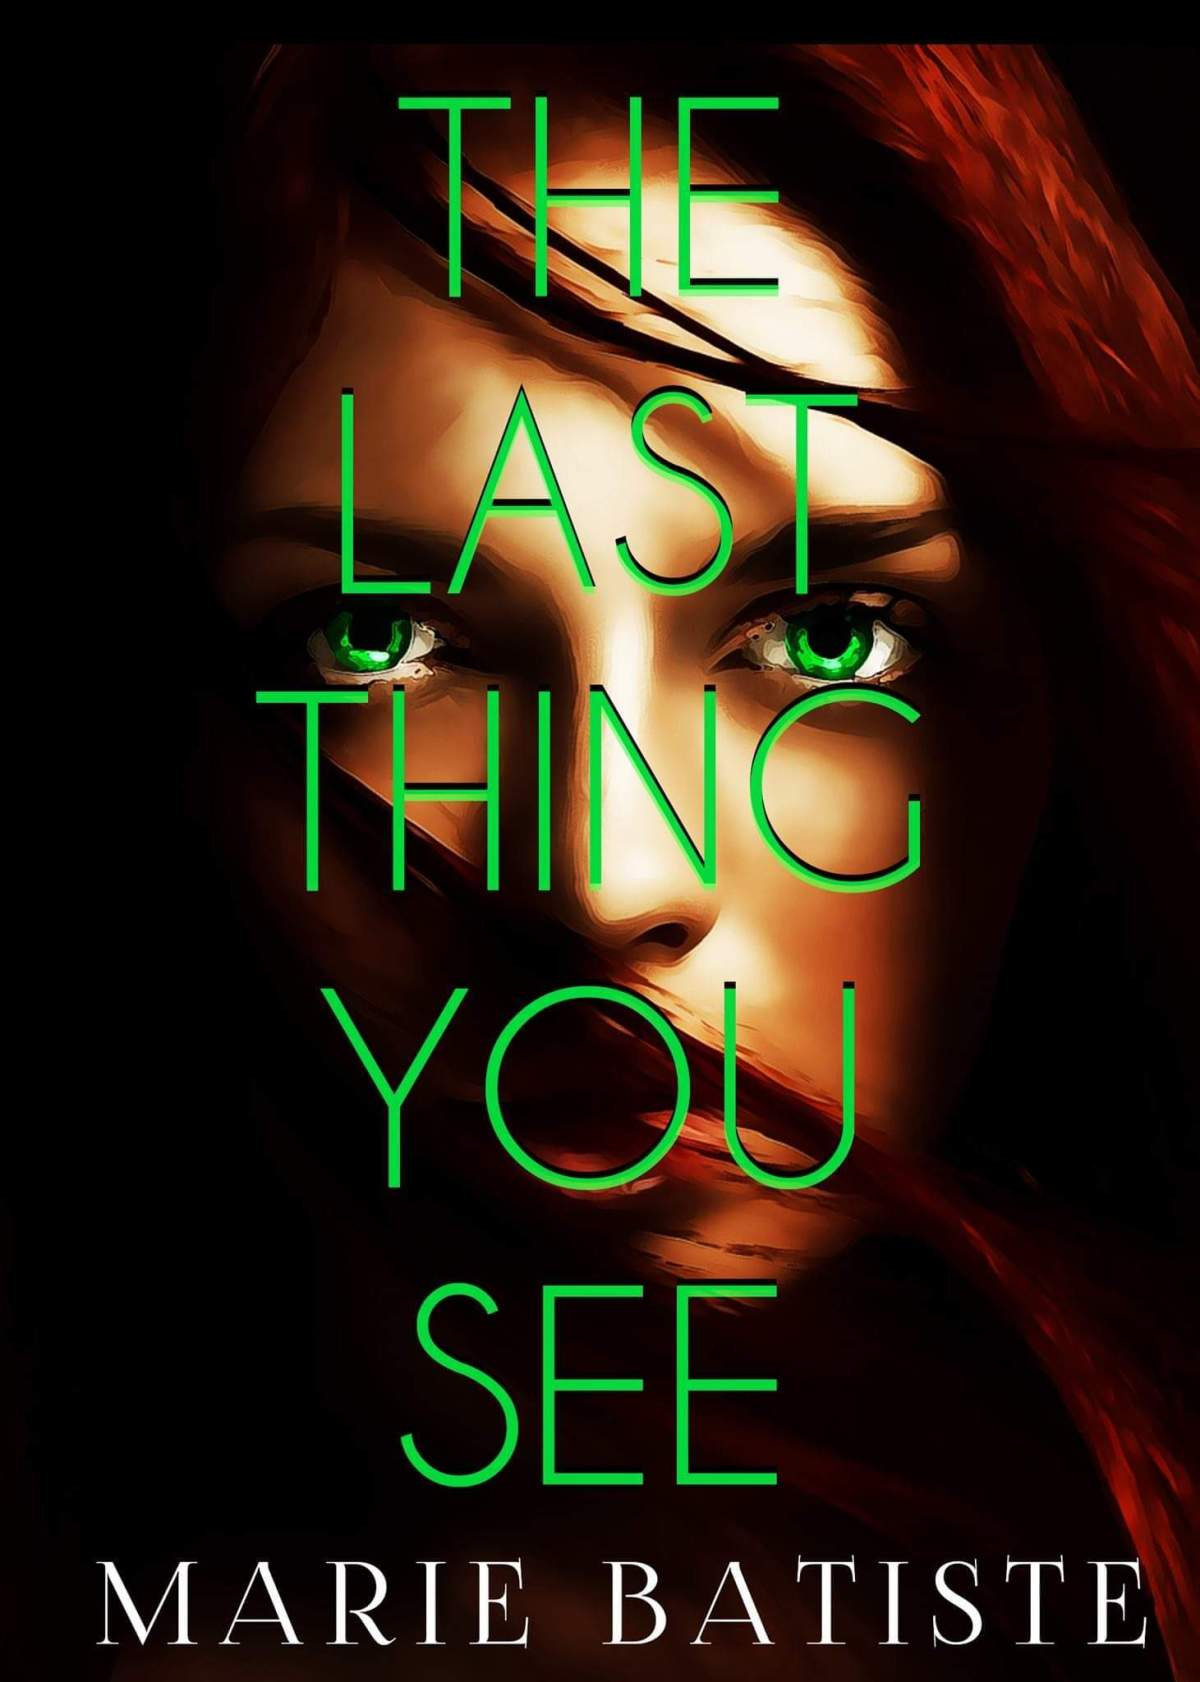 Last Thing You See Book Cover - Horror Author Marie Batiste